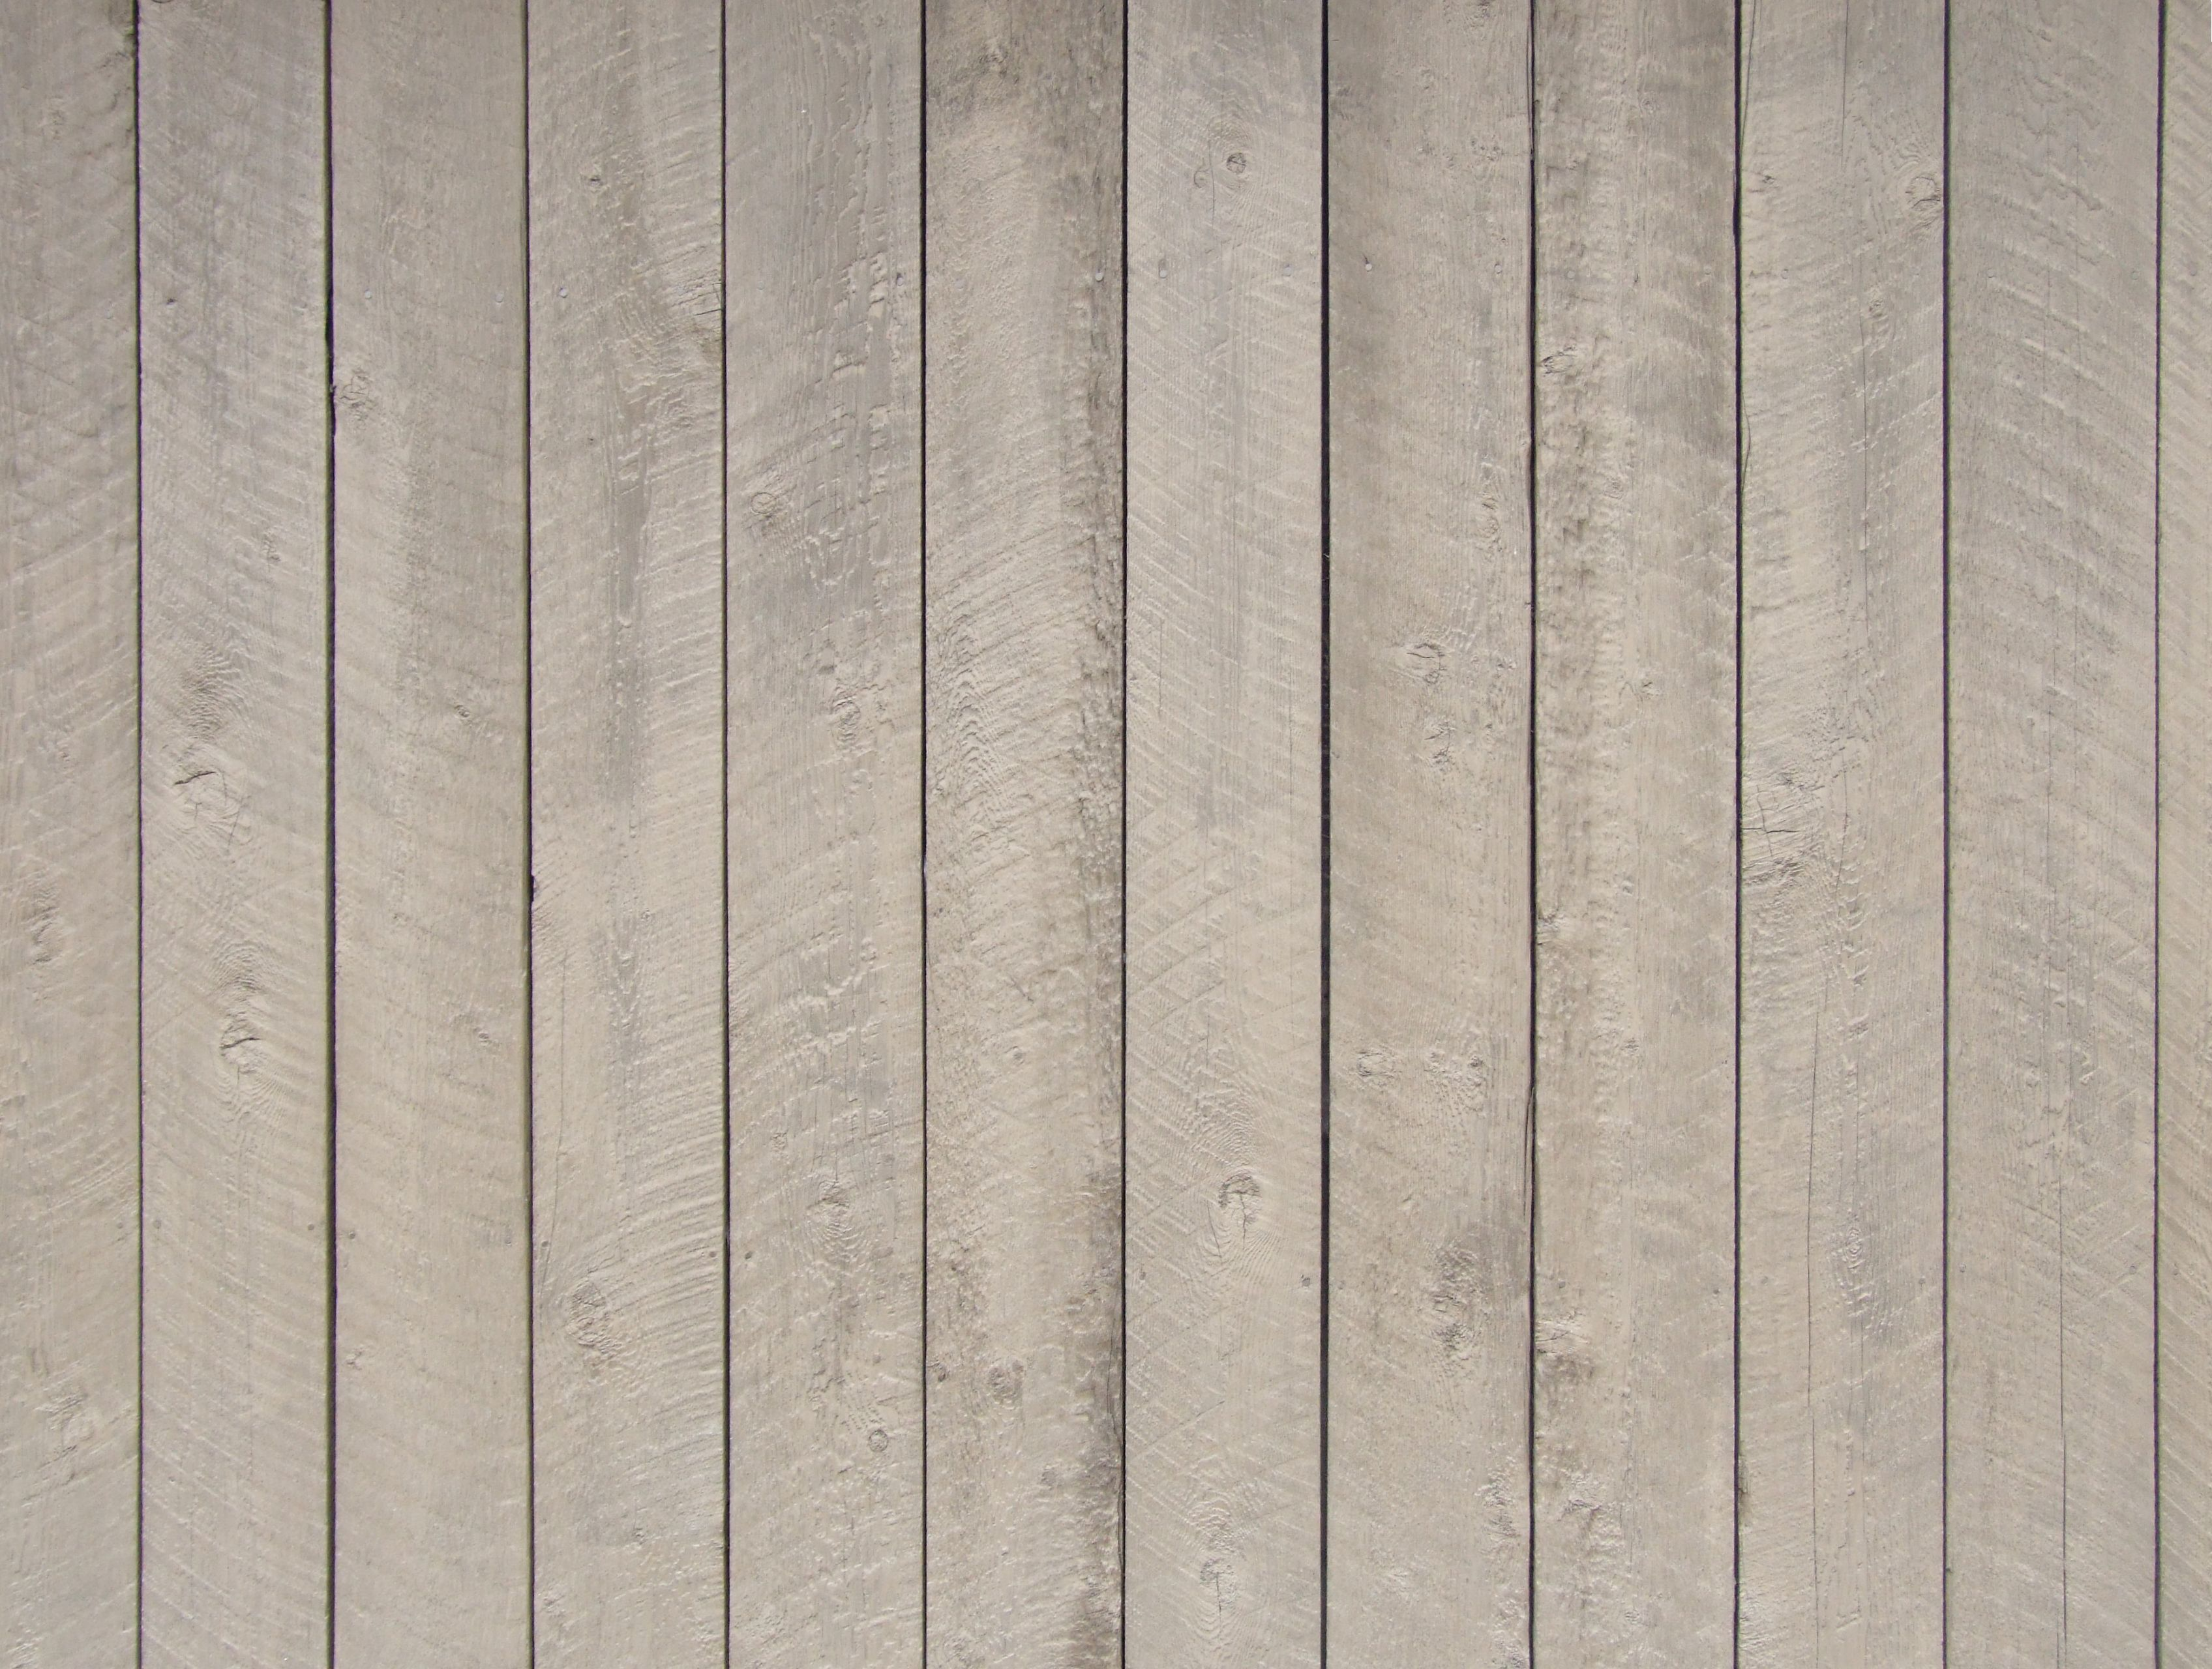 Home Texture Wood Wall Texture  Materials  Pinned Onto ☆ Webinfusionhome